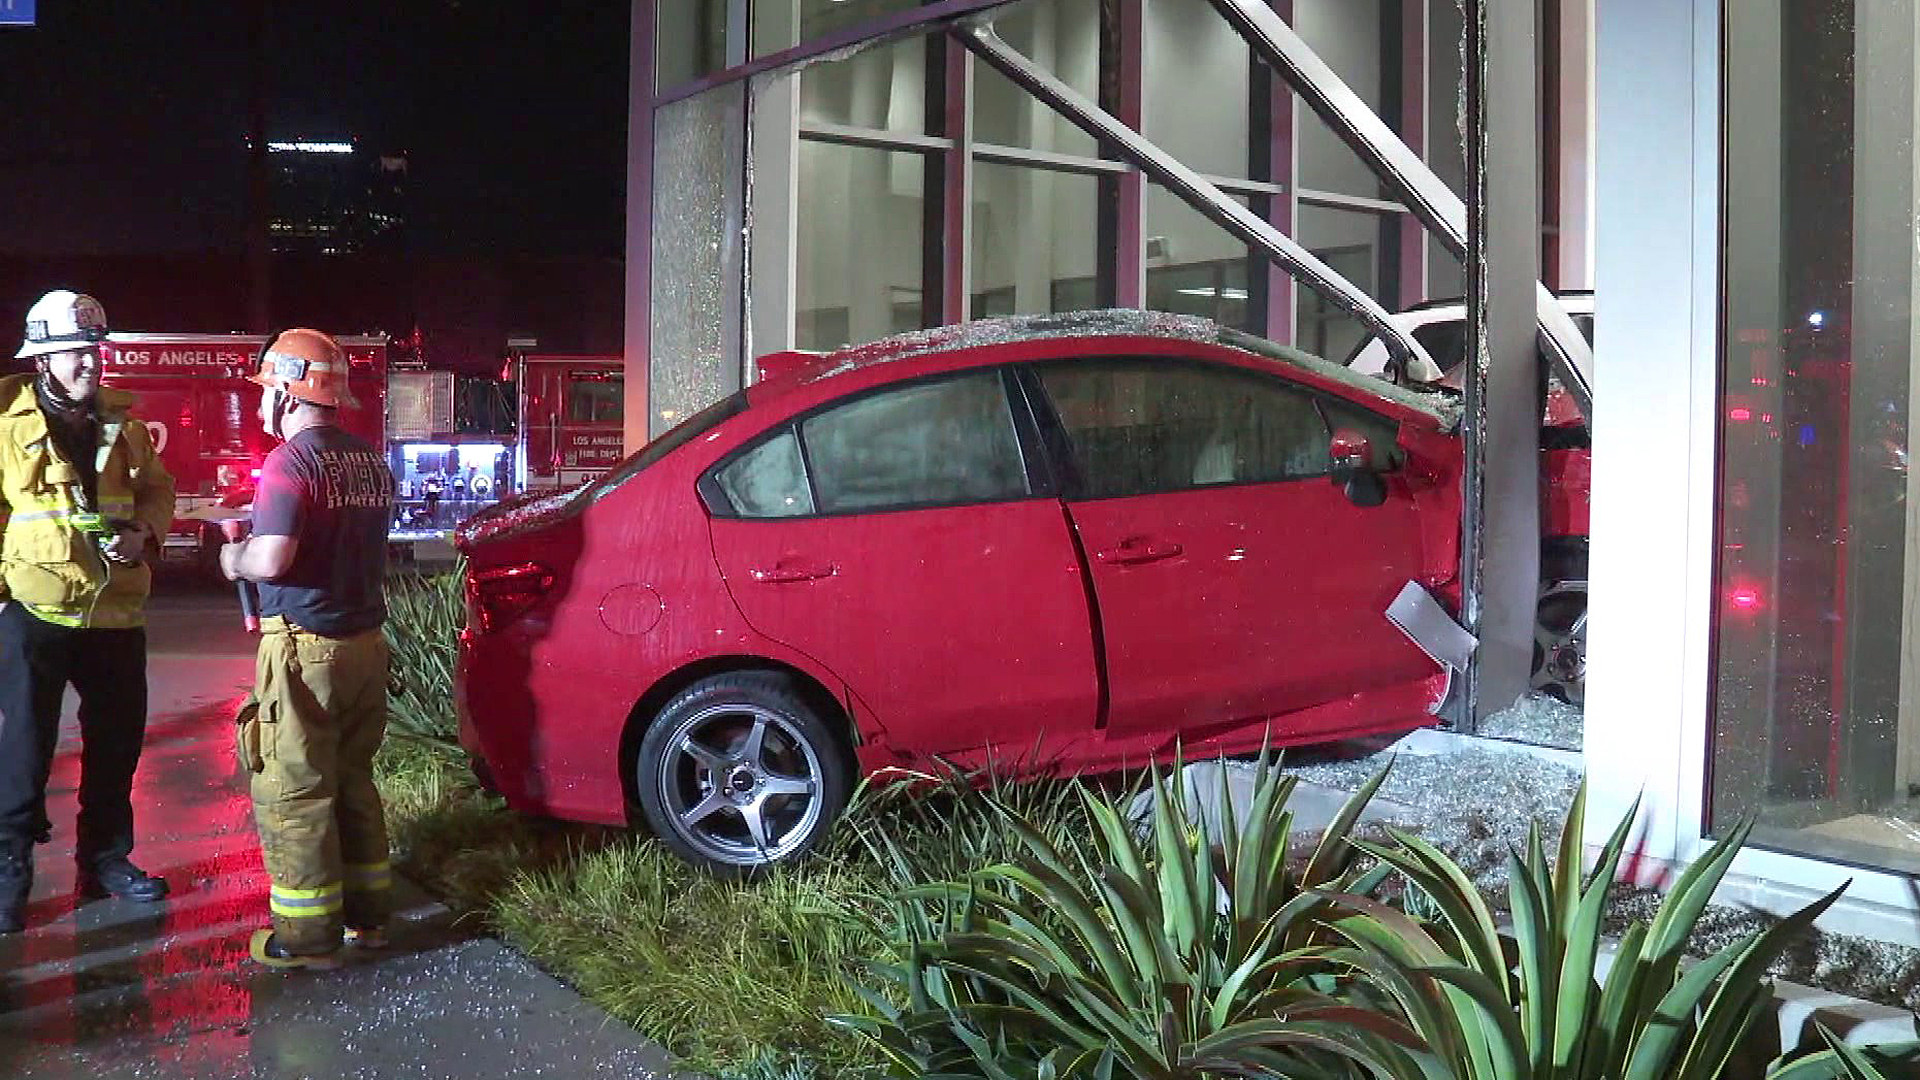 A car crashed into a car dealership in Toluca Lake on April 24, 2019. (Credit: KTLA)